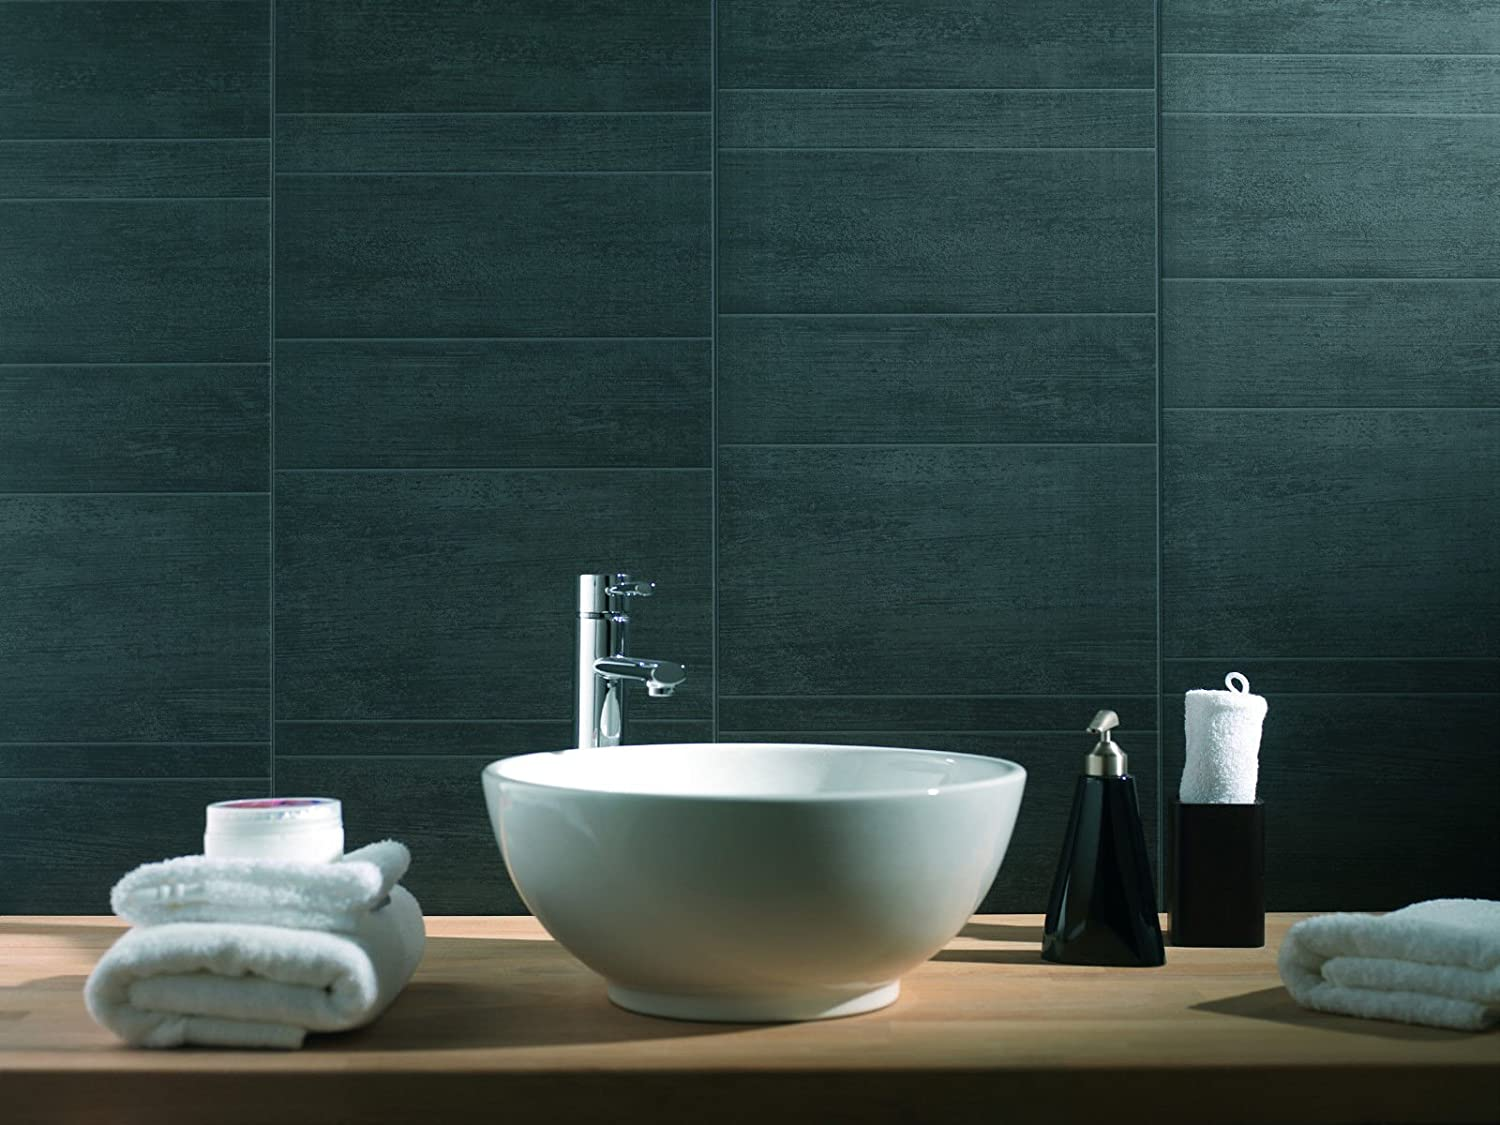 Exceptional Swish Marbrex Anthracite Large Tile Effect Wall Panels Bathroom PVC Wet Wall  Cladding (6, Large Tile): Amazon.co.uk: Kitchen U0026 Home Part 13